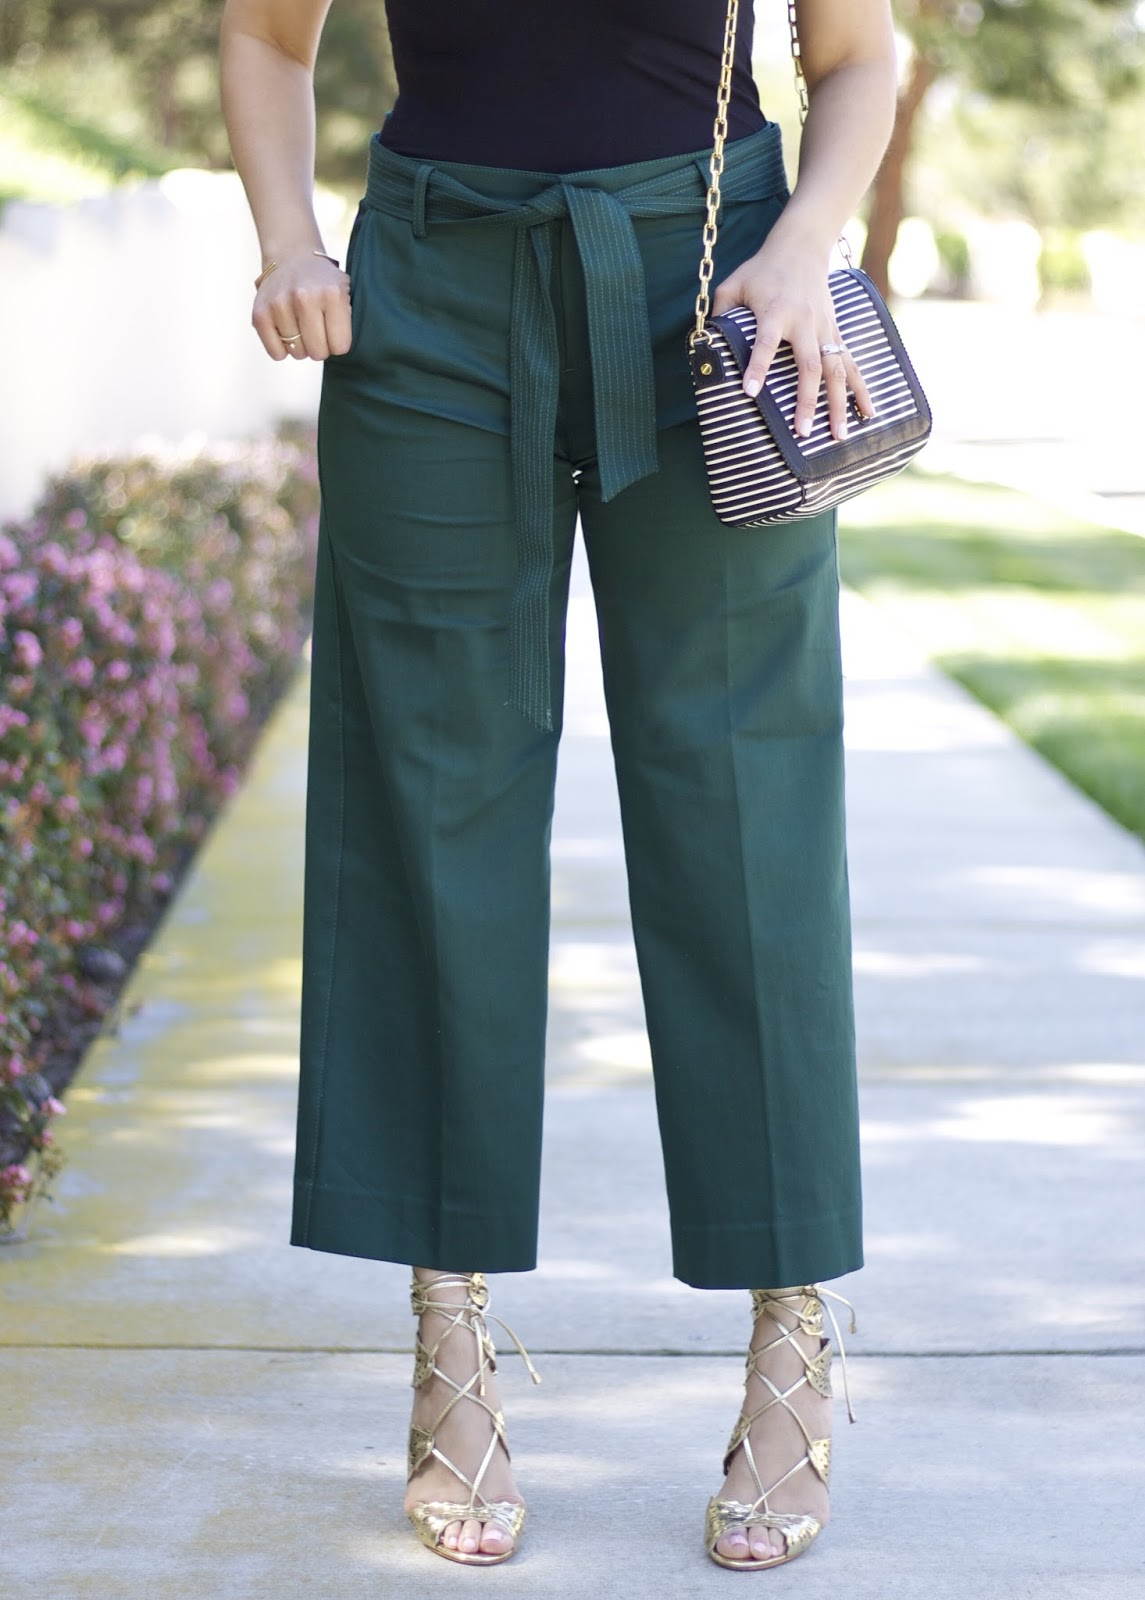 Culottes Outfit, banana republic culottes, green pants, how to wear green pants